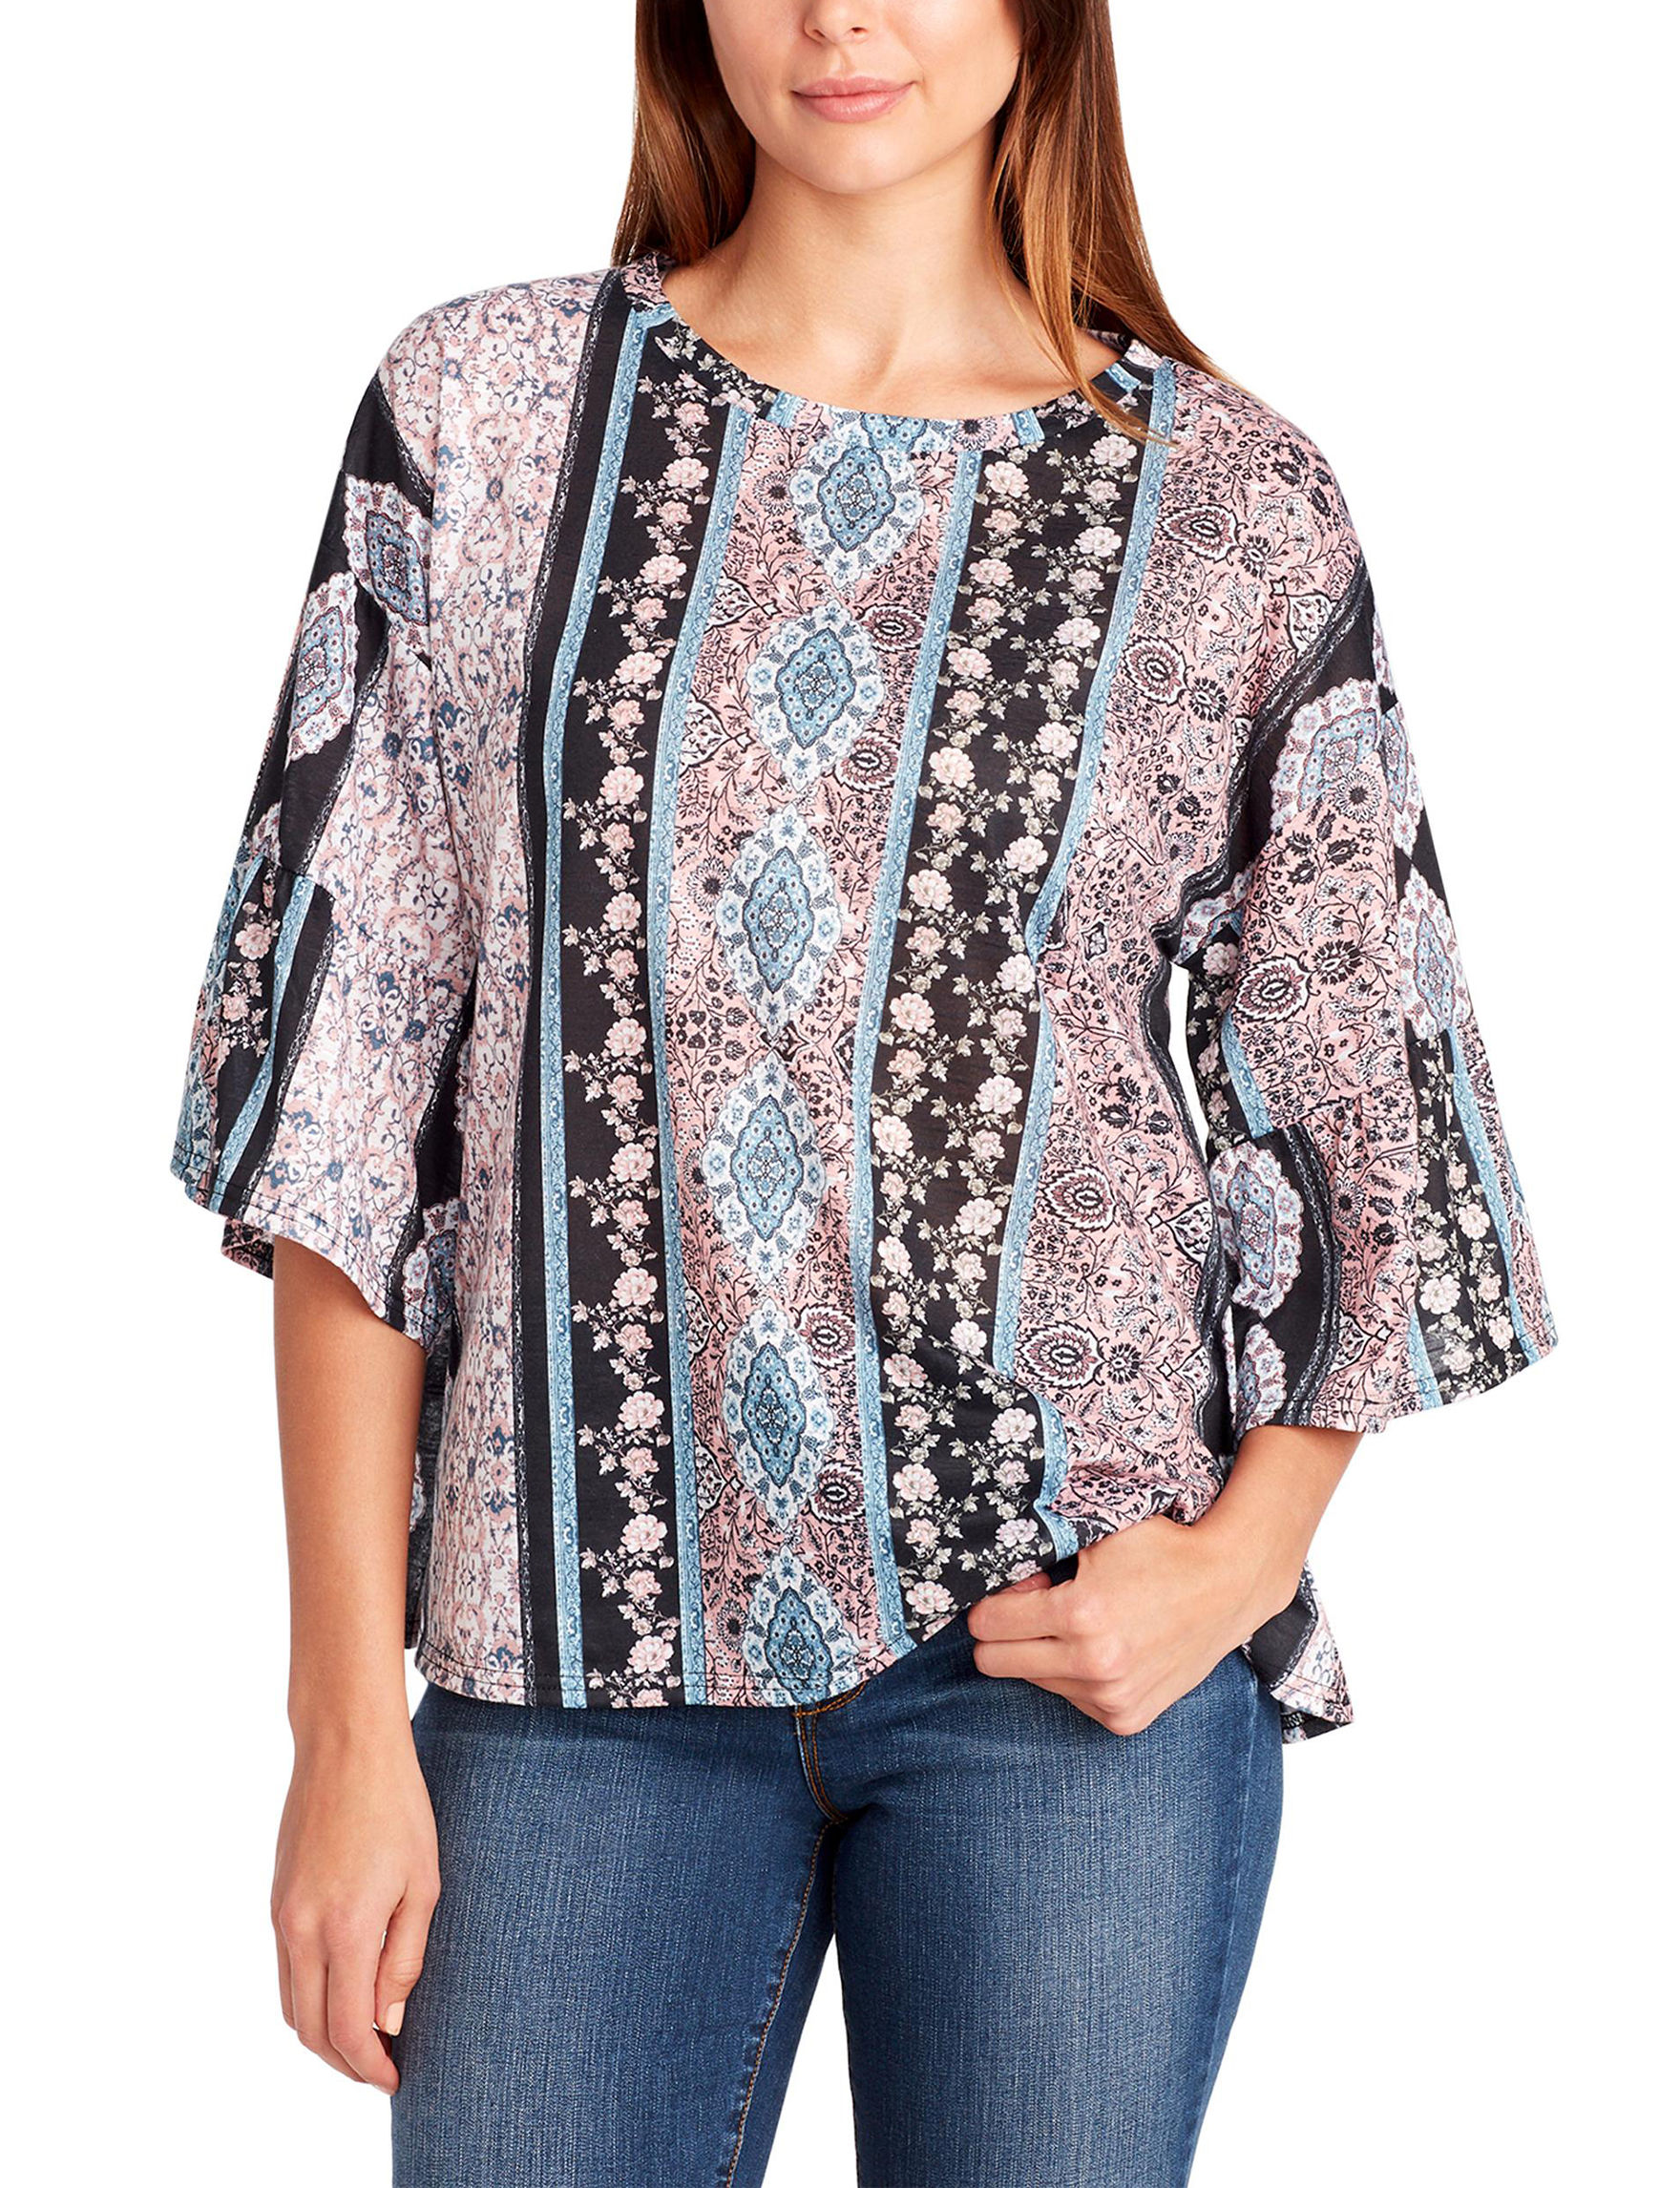 Nine West Pink Multi Shirts & Blouses